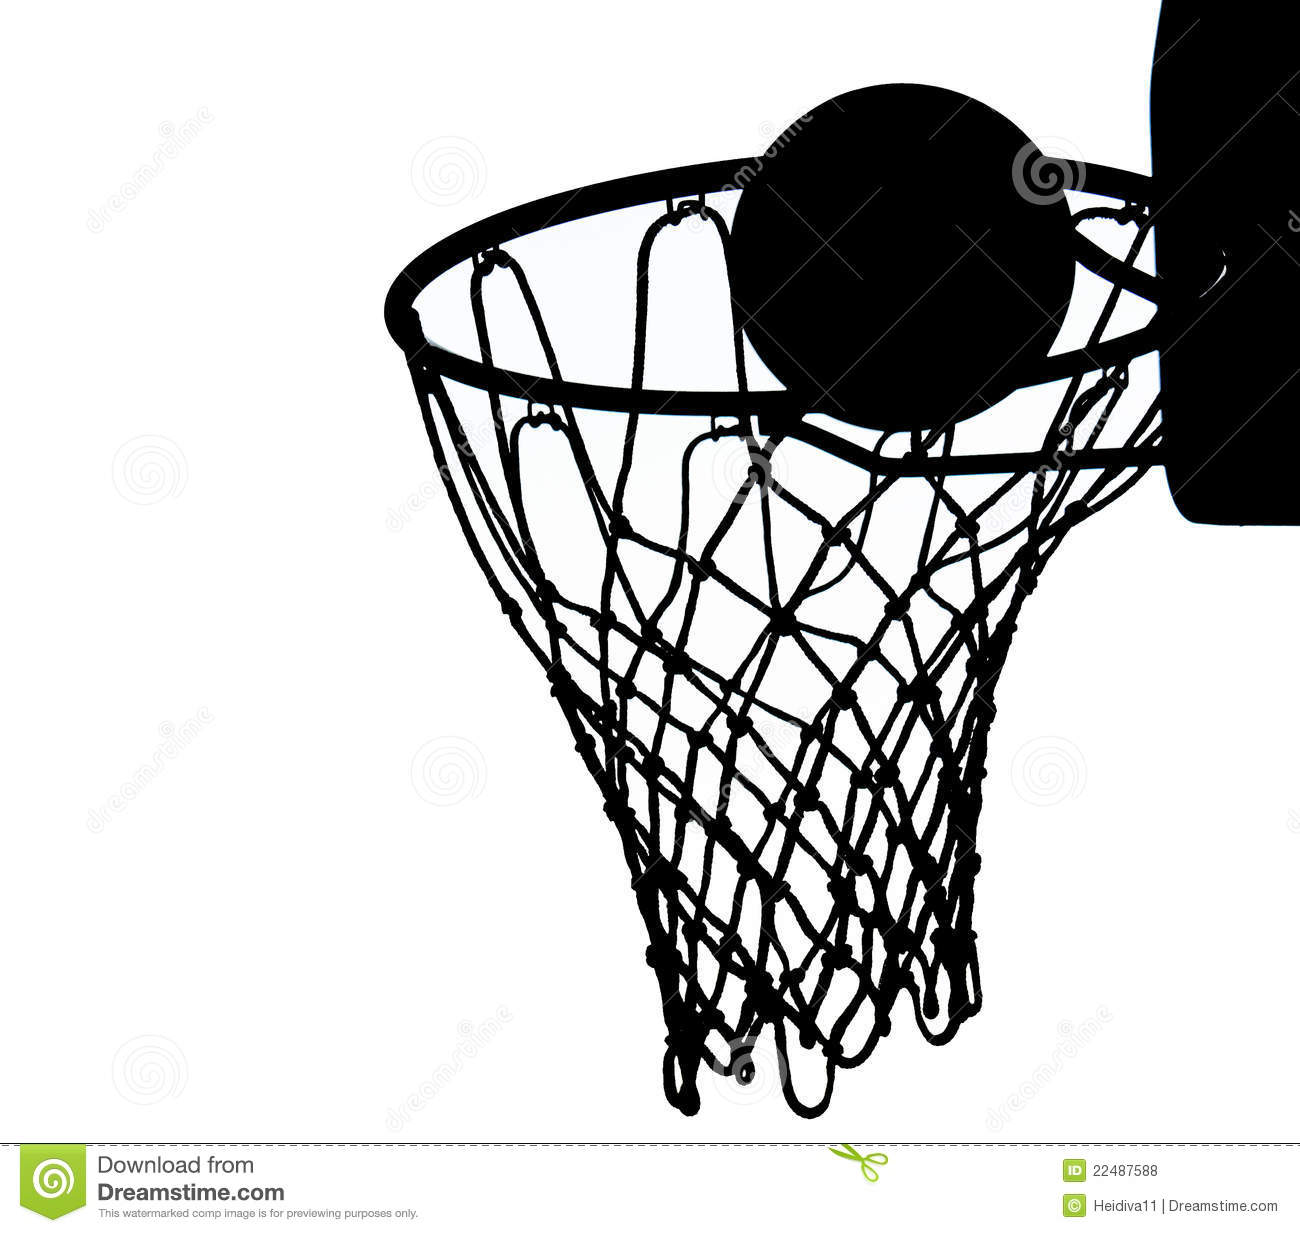 Basketball Net Silhouette Vector